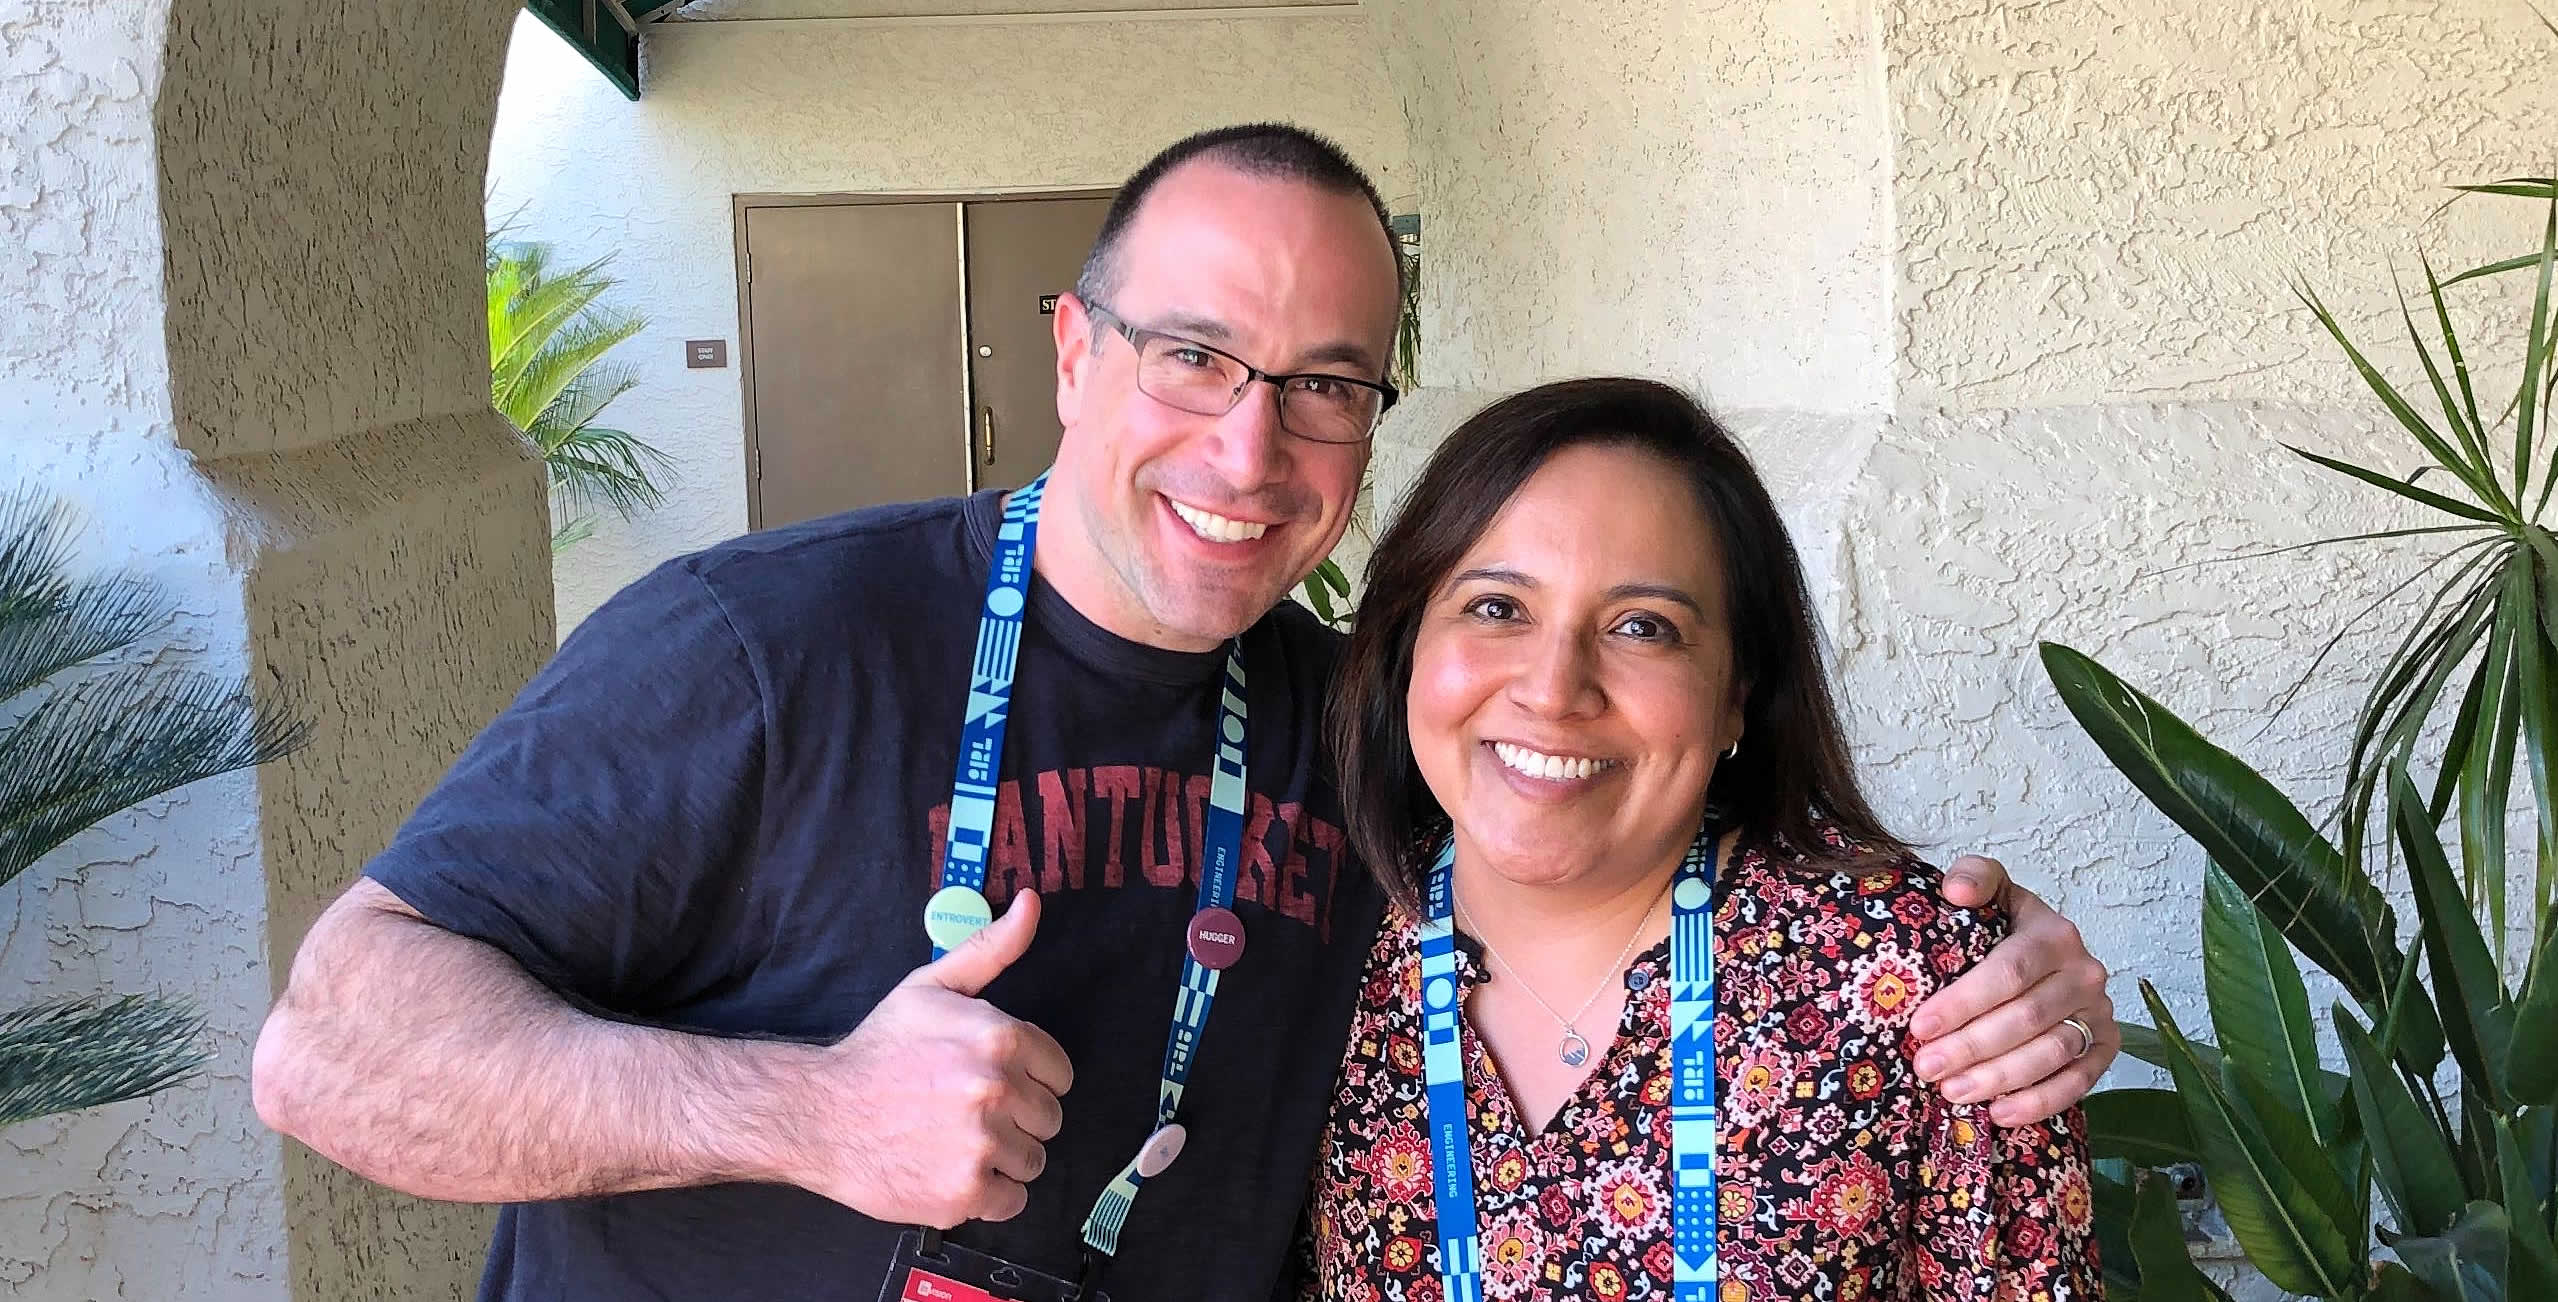 Ben Nadel at InVision In Real Life (IRL) 2019 (Phoenix, AZ) with: Jeanette Silvas